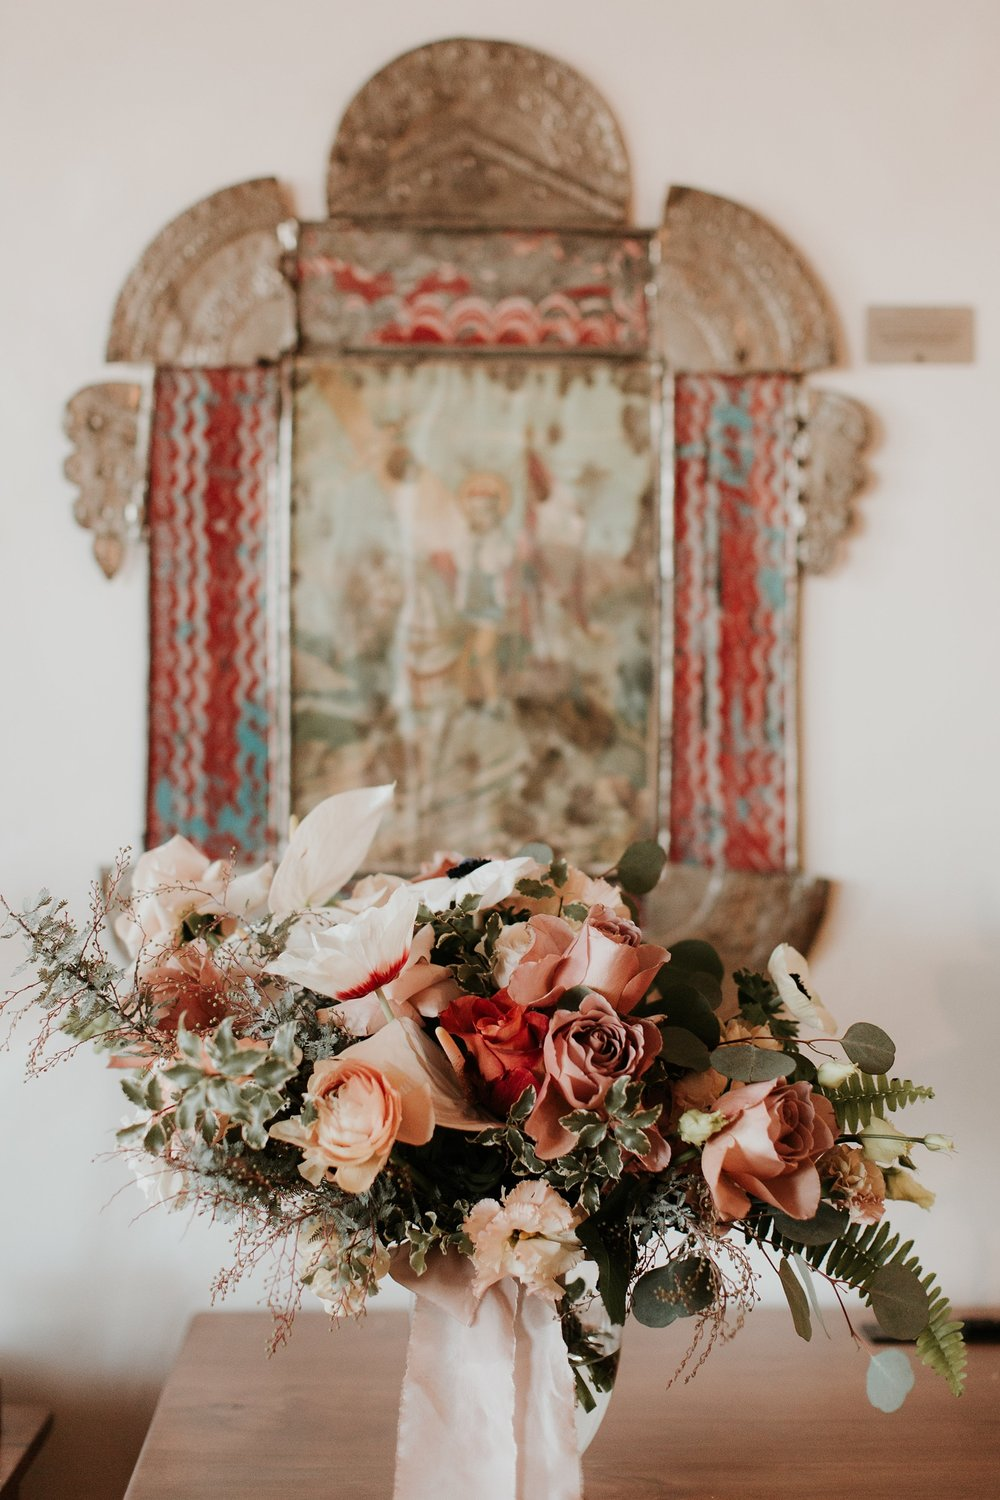 Alicia+lucia+photography+-+albuquerque+wedding+photographer+-+santa+fe+wedding+photography+-+new+mexico+wedding+photographer+-+la+fonda+wedding+-+la+fonda+winter+wedding_0002.jpg